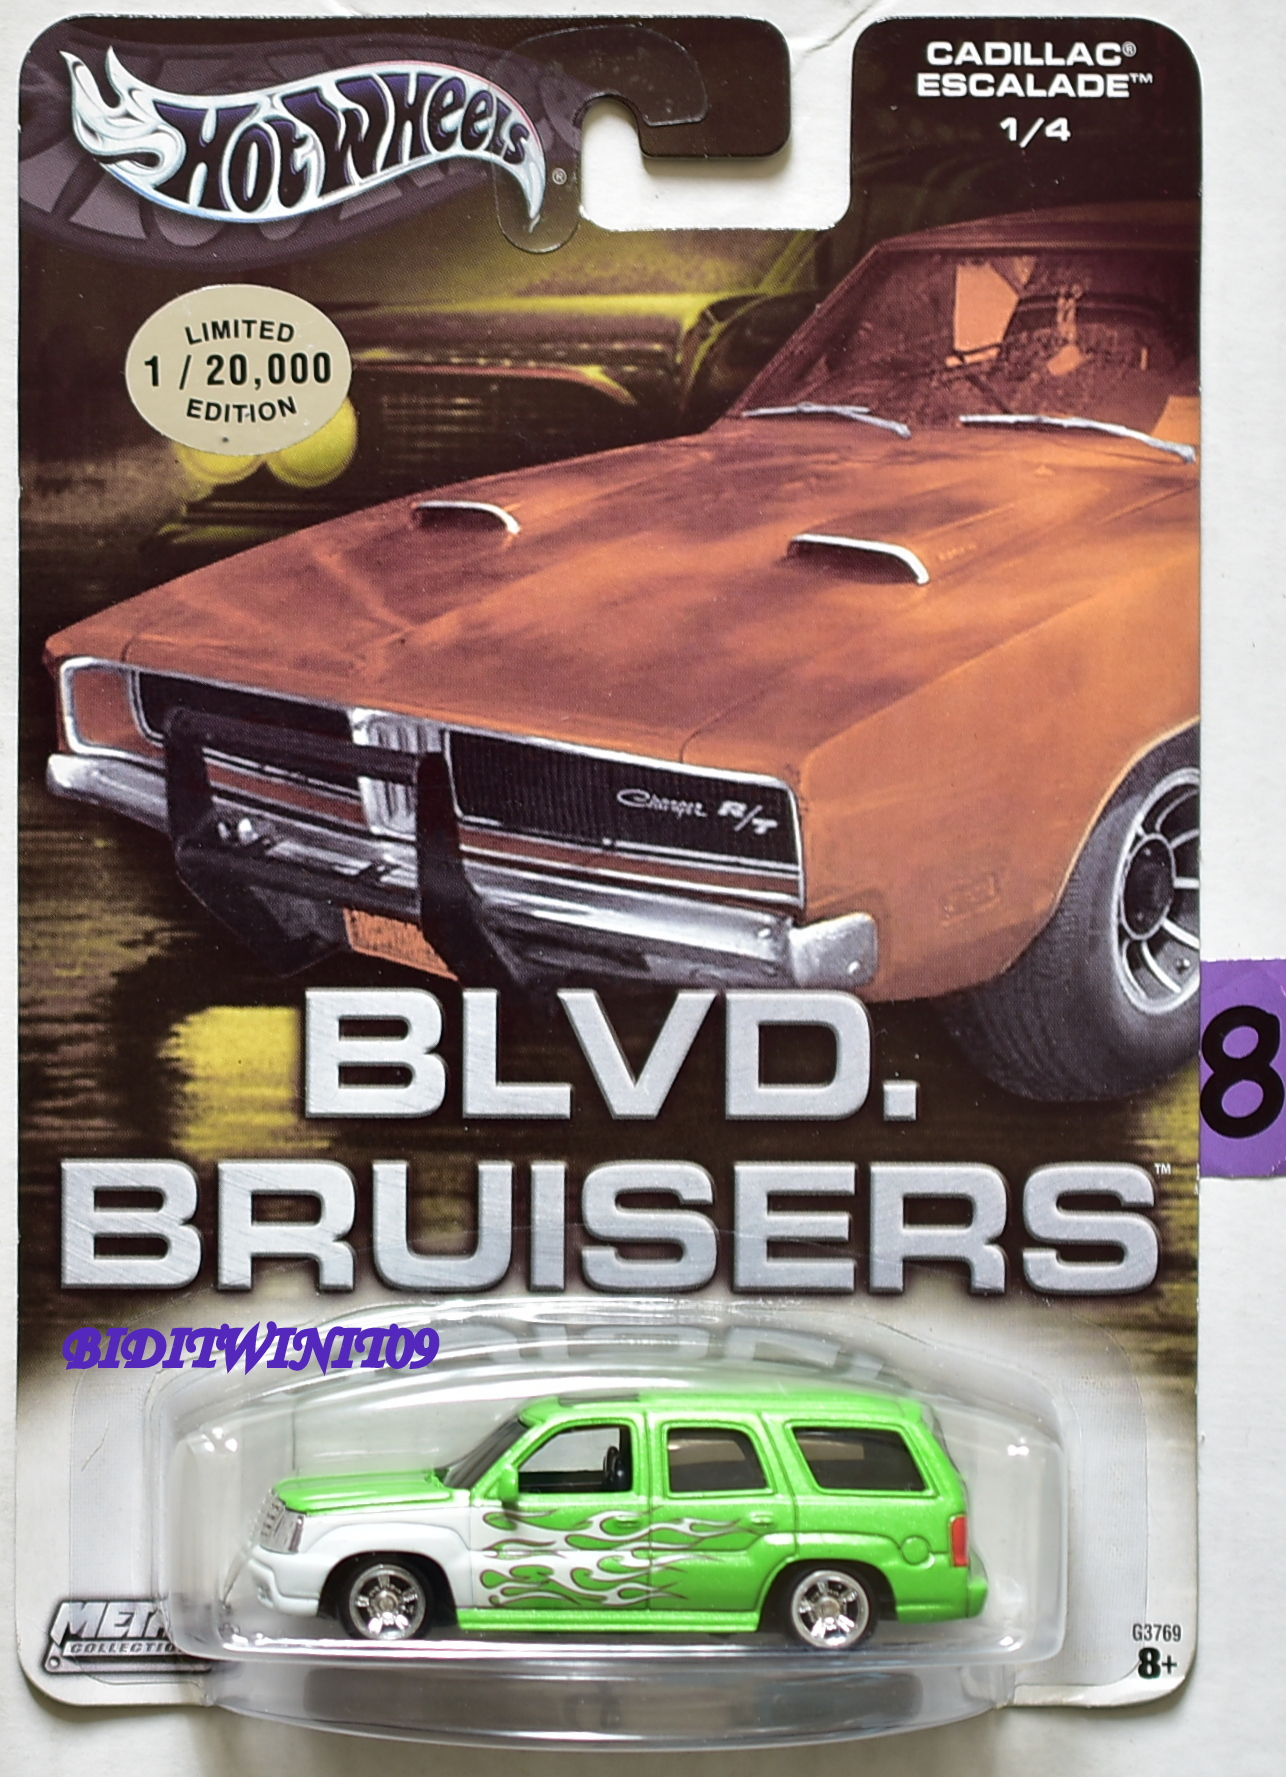 HOT WHEELS BLVD. BRUISERS CADILLAC ESCALADE #1/4 GREEN E+